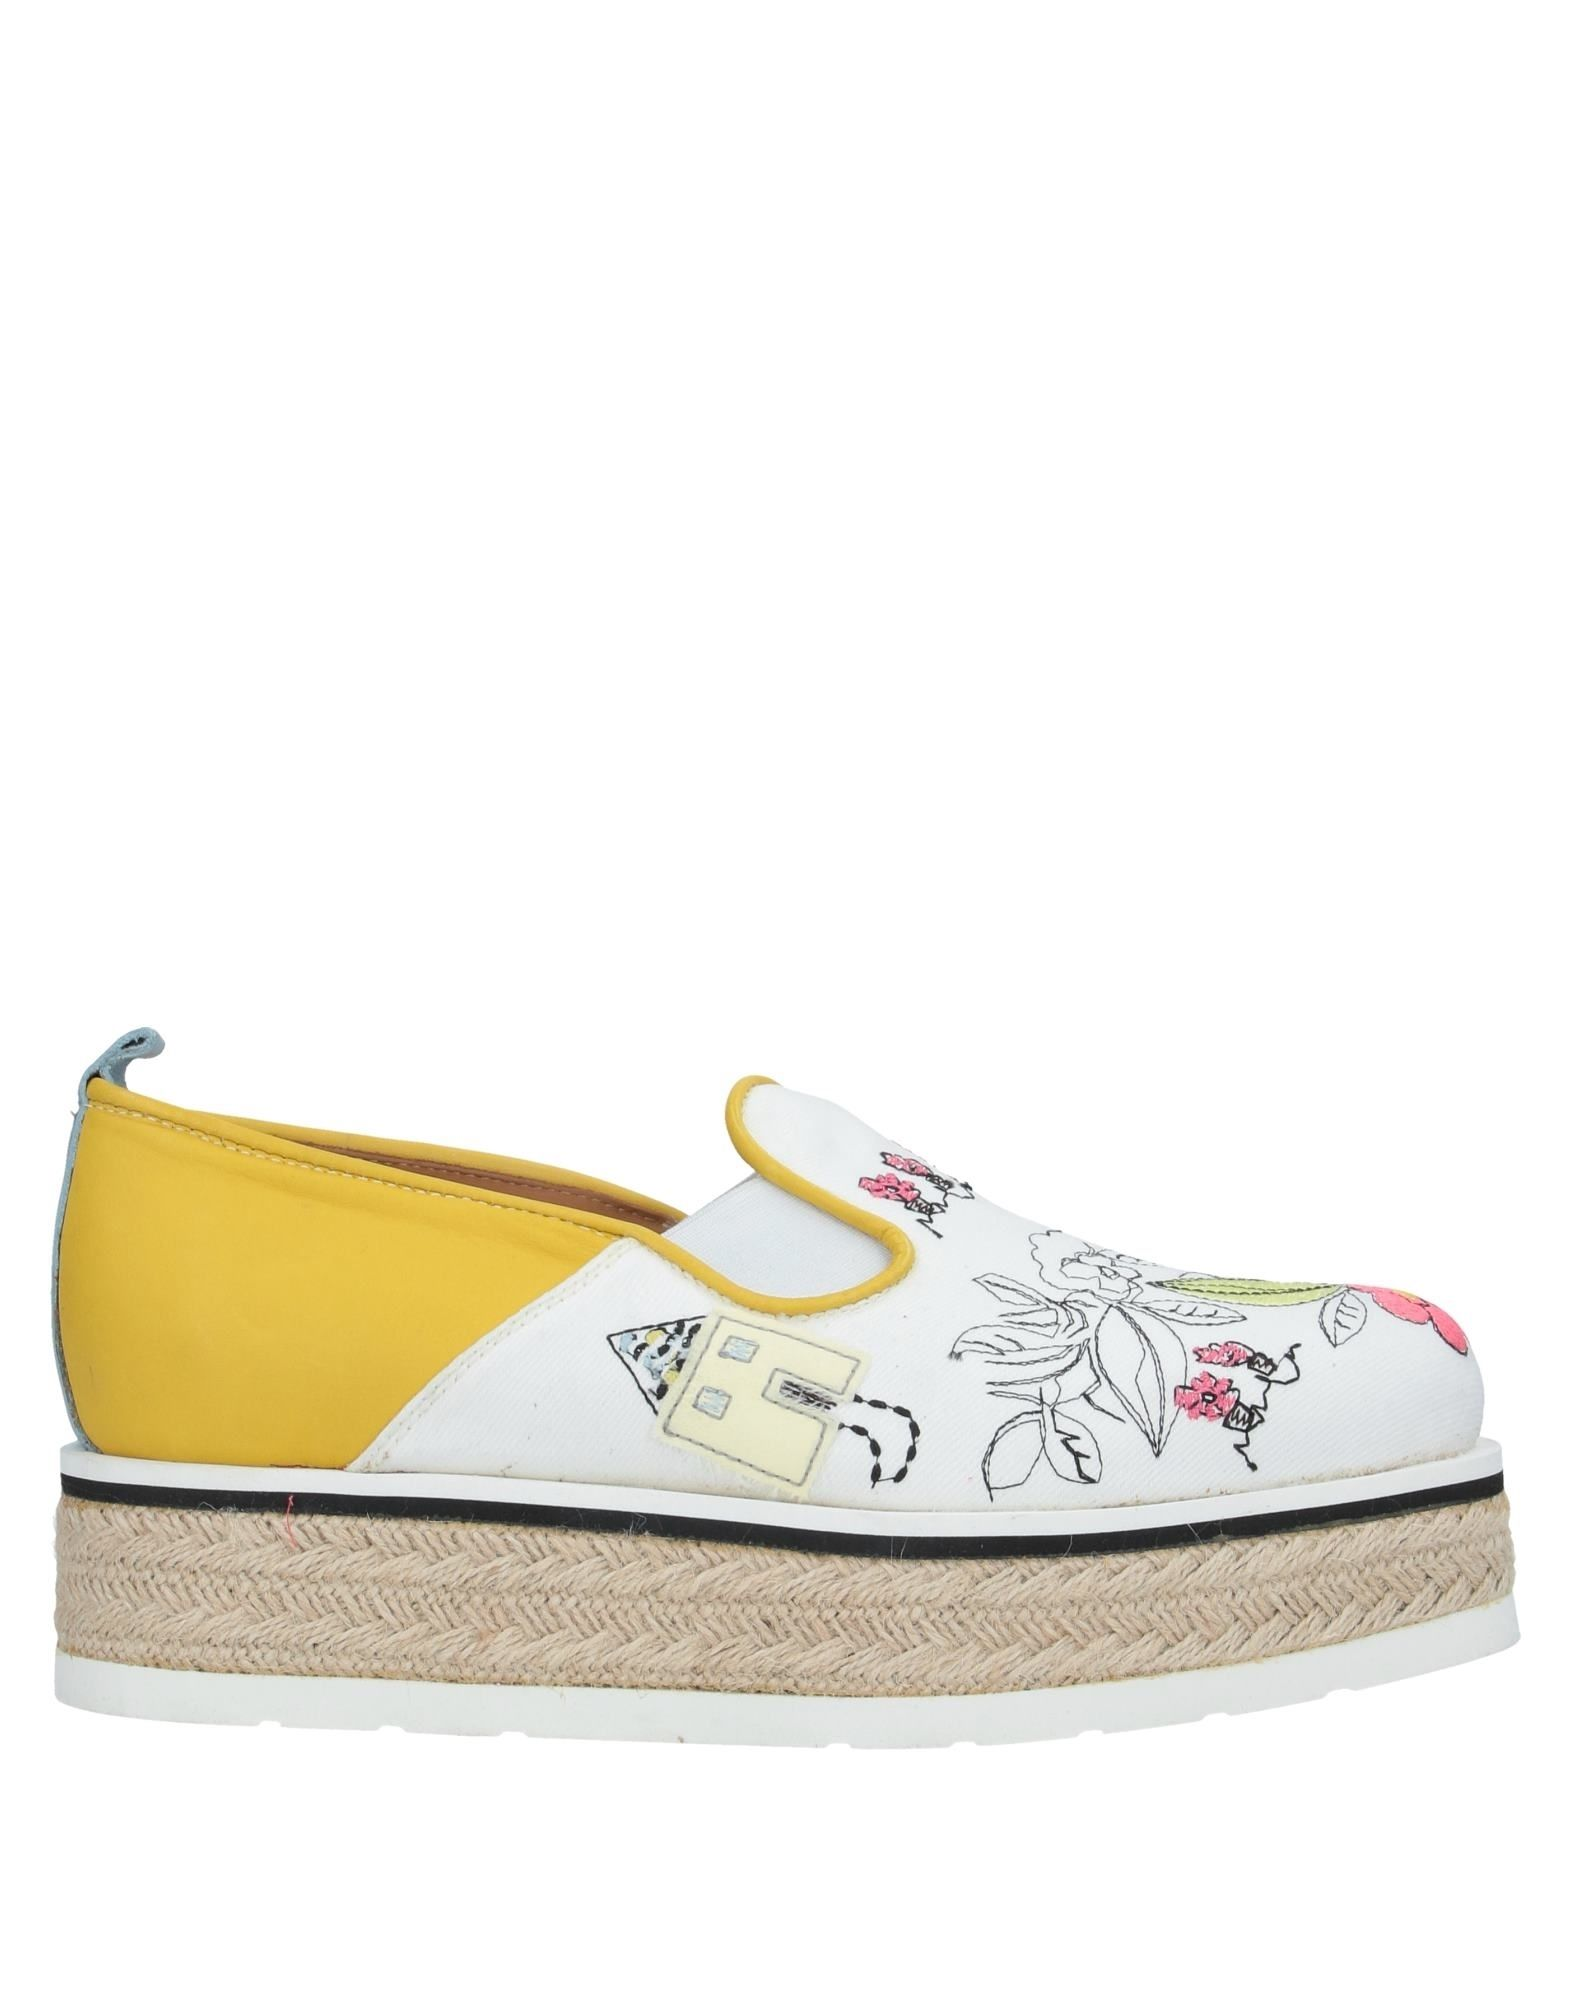 DONDUP Espadrilles. plain weave, leather, embroidered detailing, multicolor pattern, round toeline, wedge heel, rope wedge, leather lining, rubber sole, contains non-textile parts of animal origin, large sized. Soft Leather